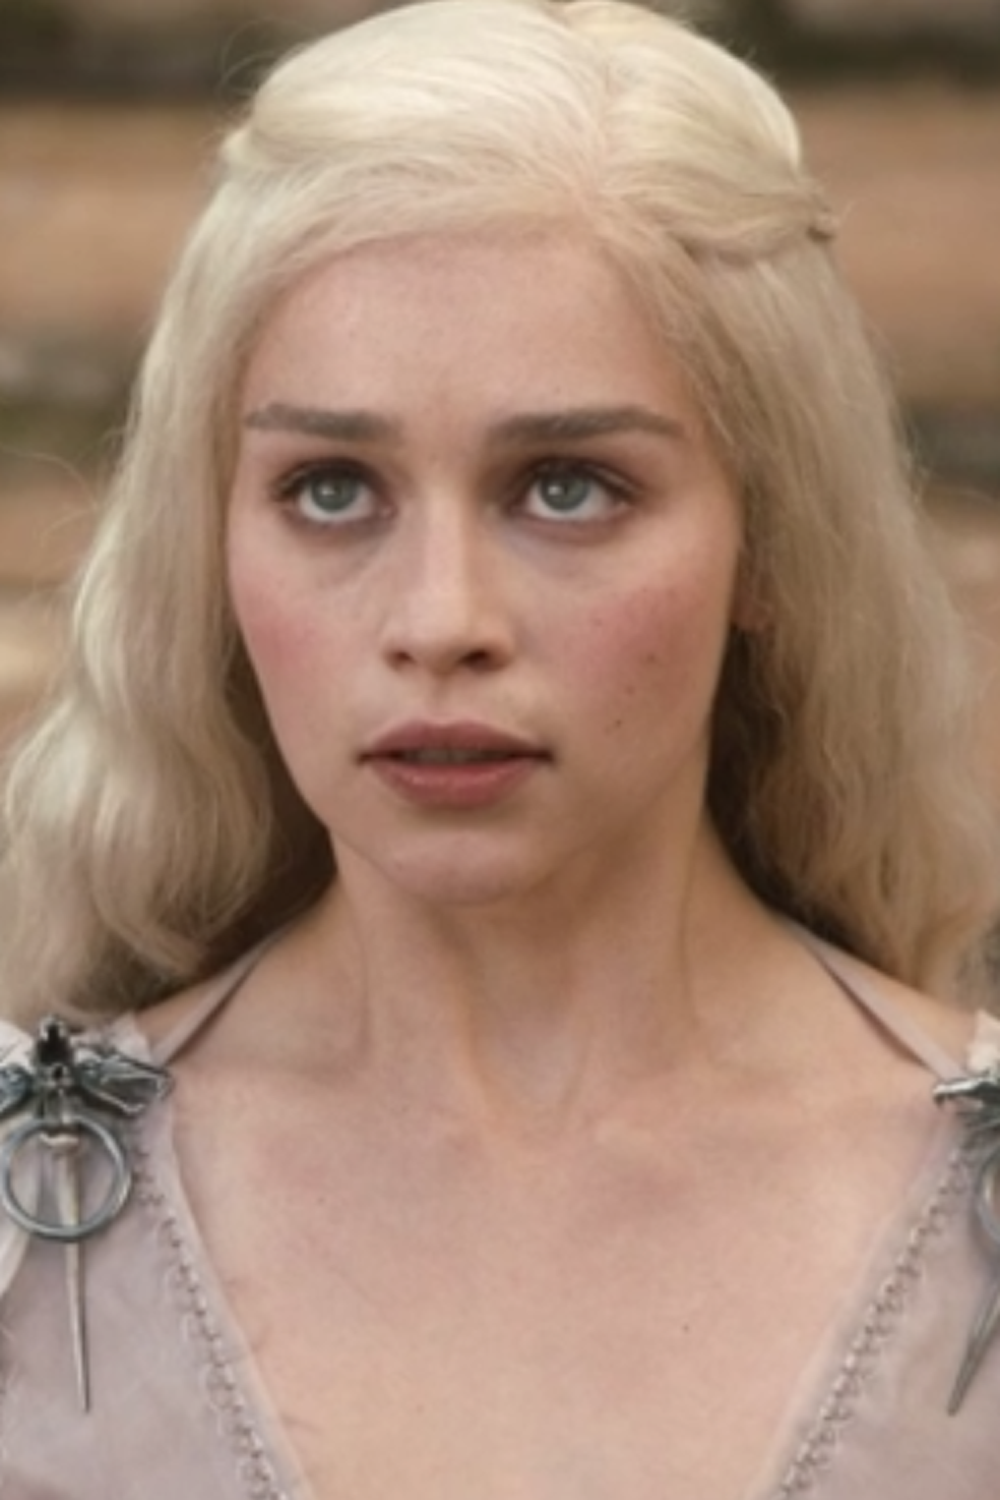 Game Of Thrones Hair Transformations Through The Years